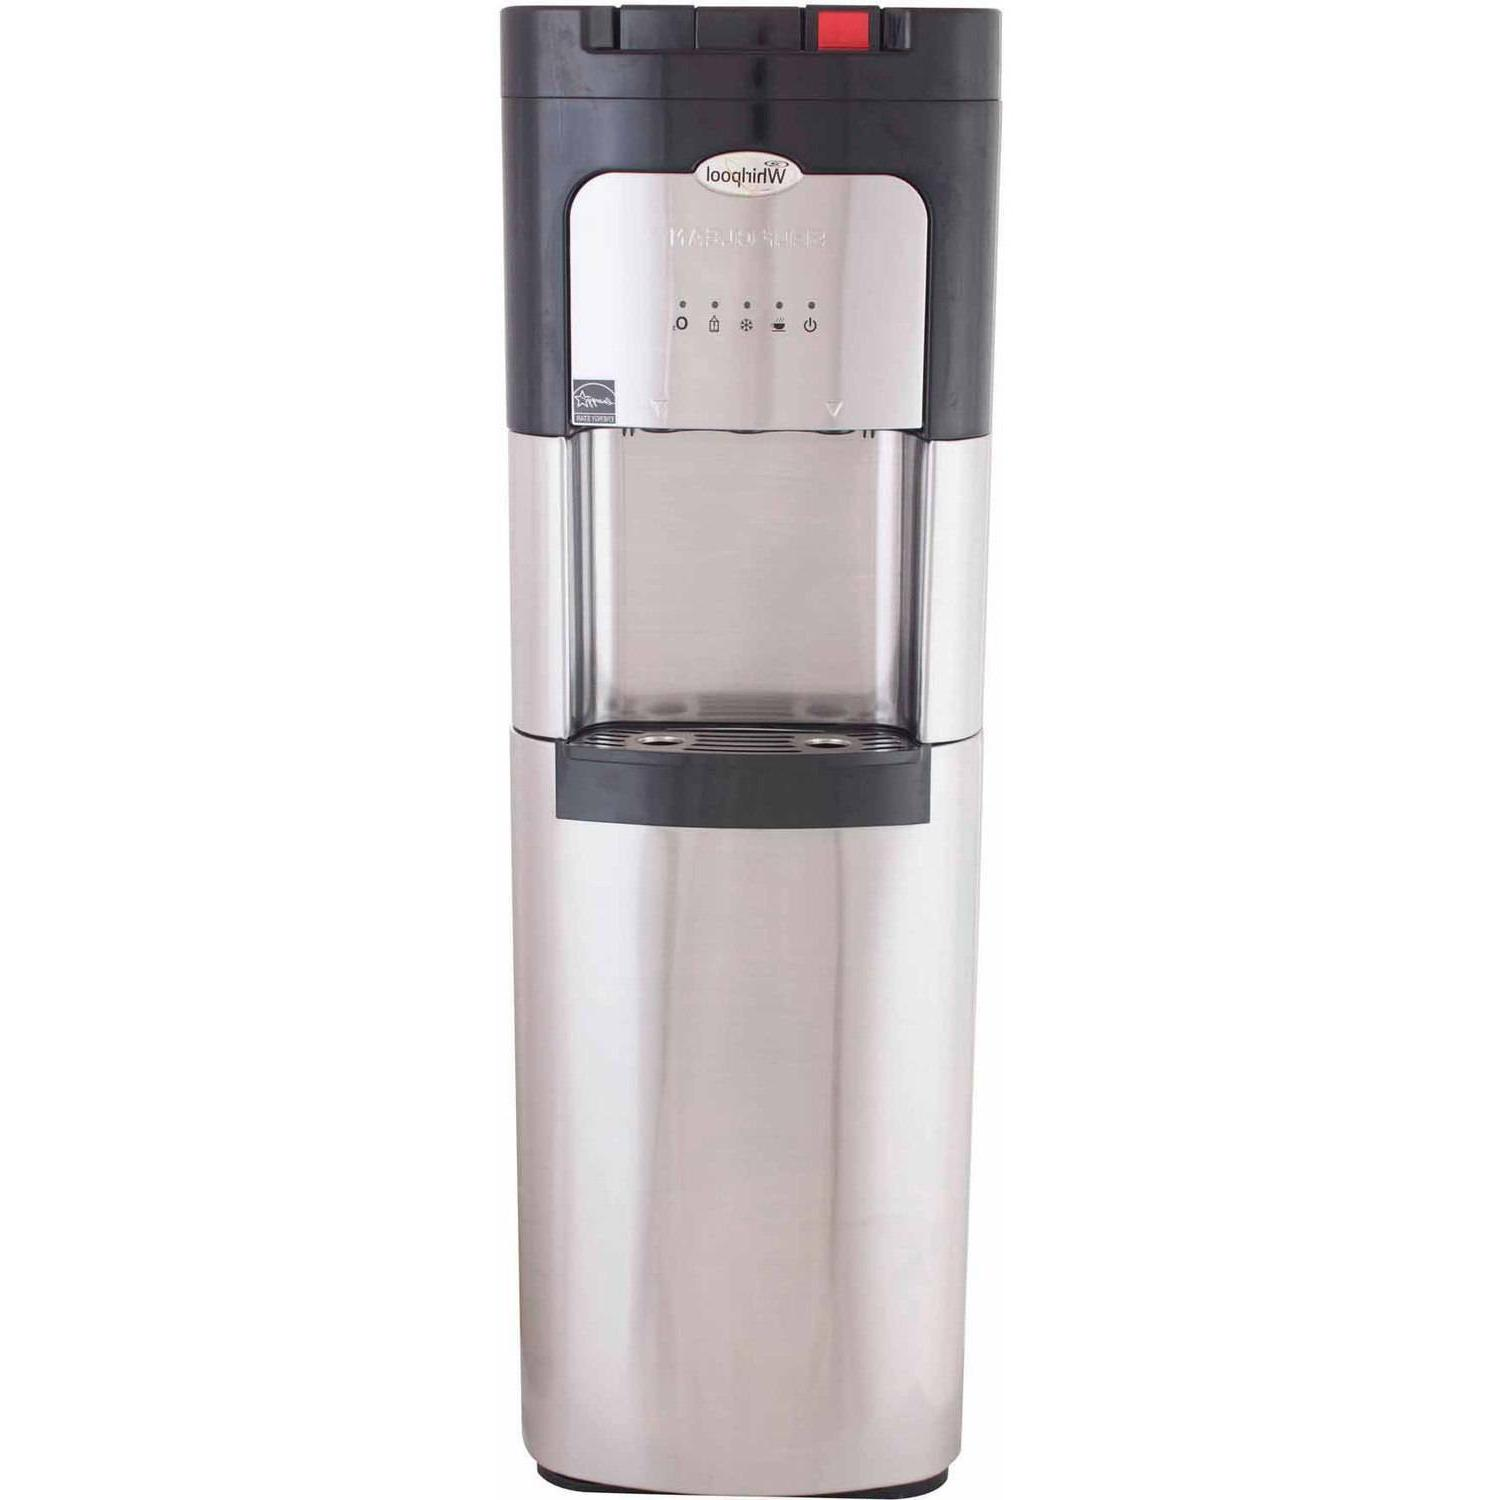 Water Cooler Hot Cold Whirlpool Stainless Steel Dispenser Bo